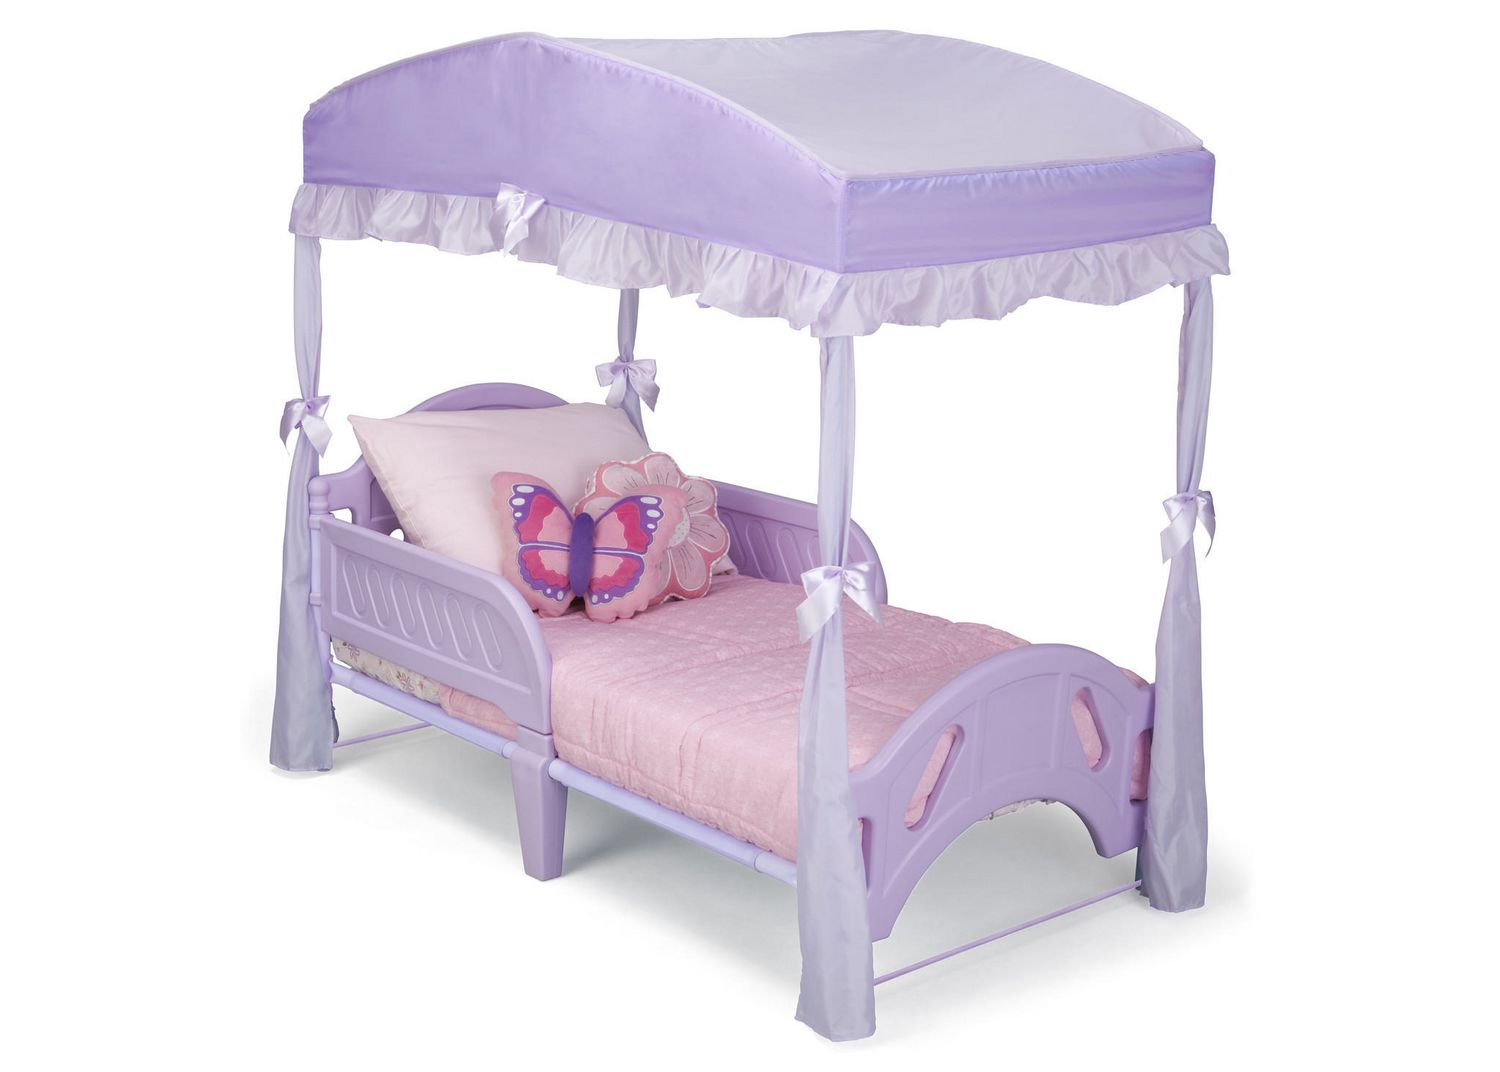 sc 1 st  Walmart Canada & Decorative Canopy for Toddler Bed- Purple | Walmart Canada